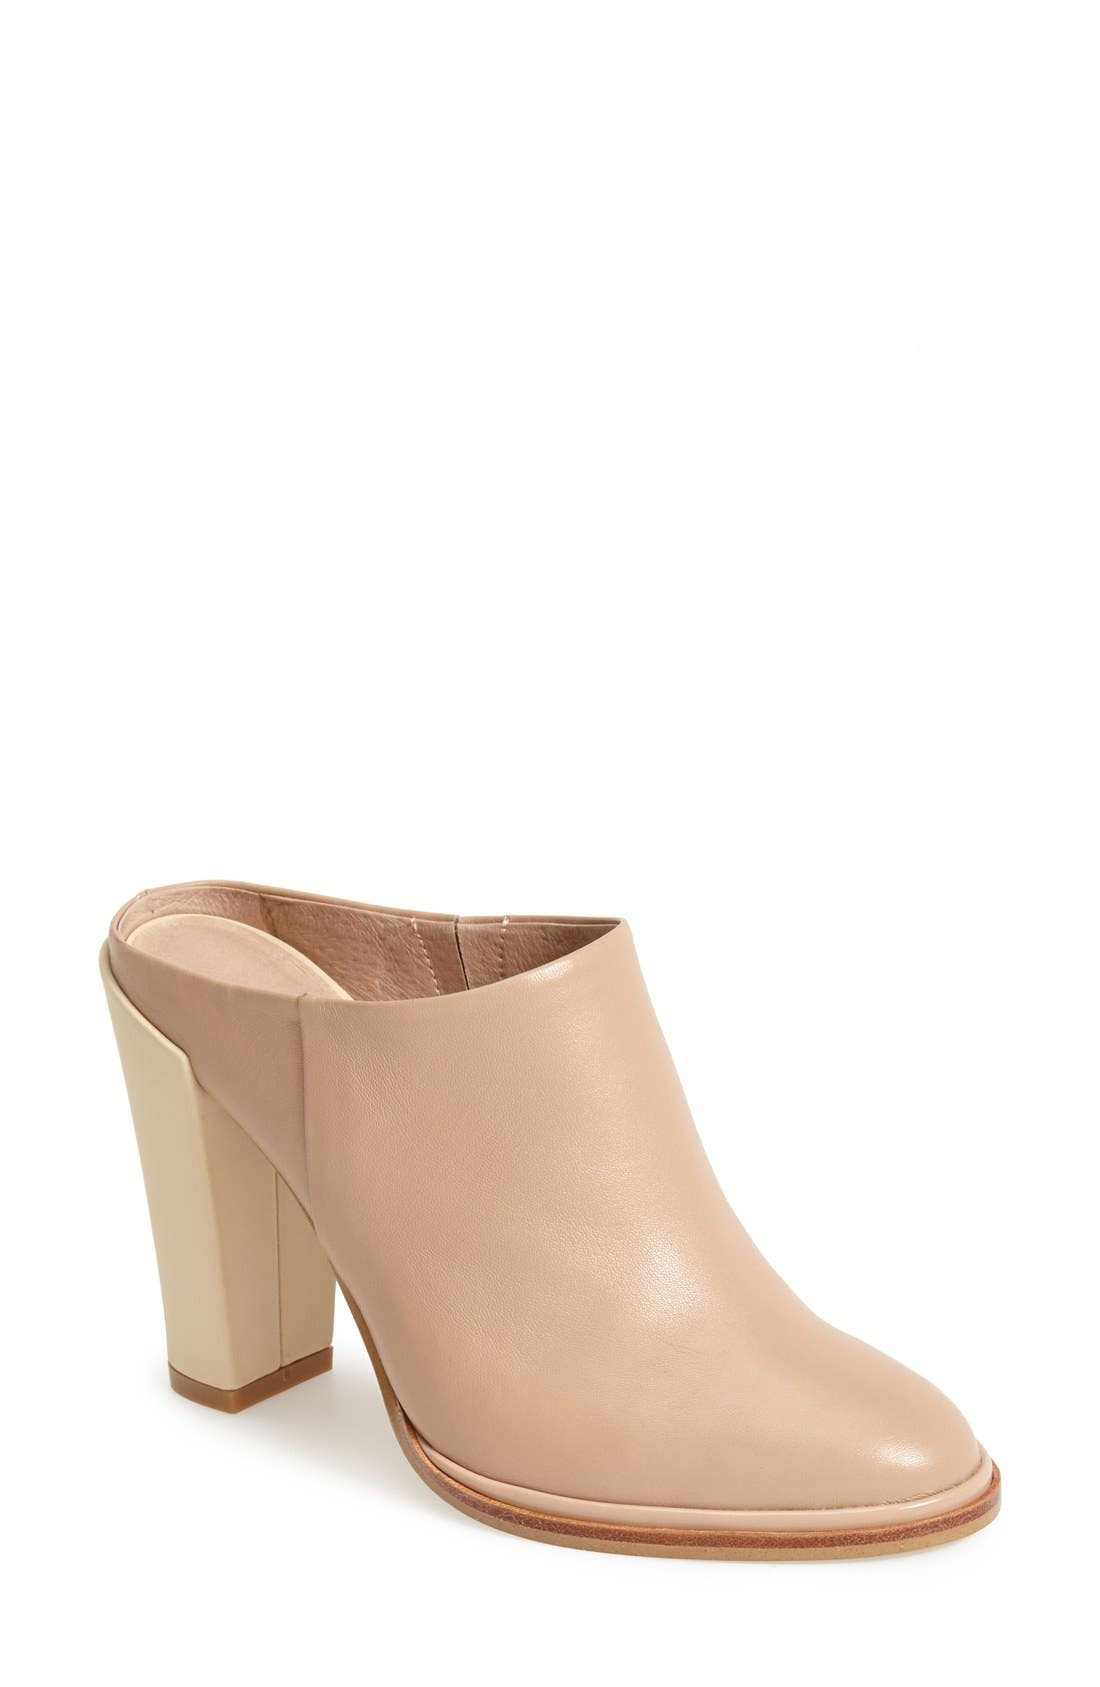 Alternate Image 1 Selected - Kenneth Cole New York 'Jackson' Bootie (Women)